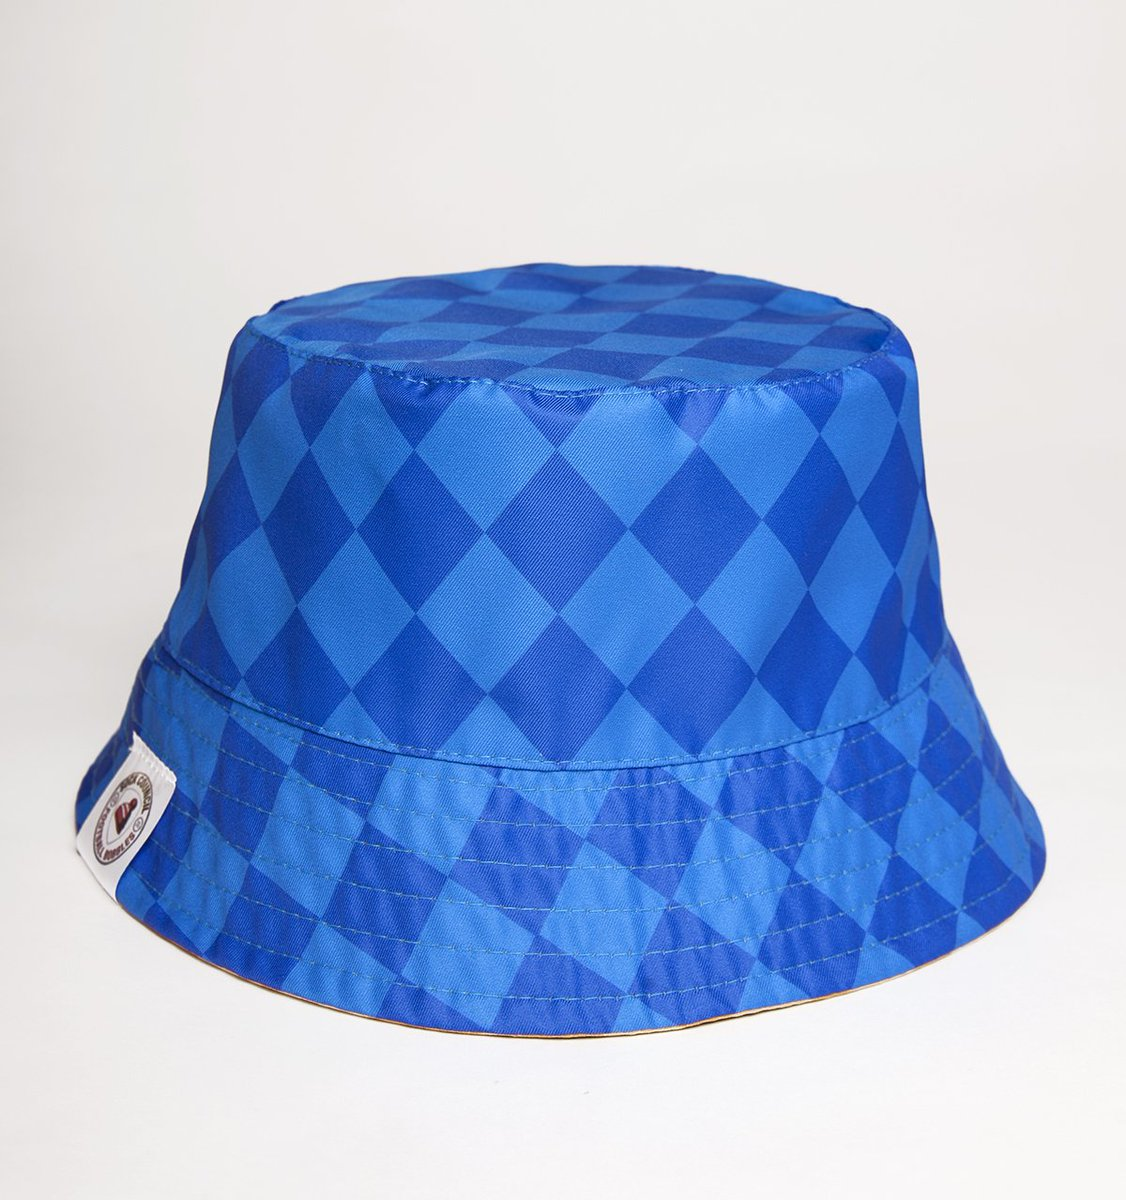 Football Bobbles On Twitter We Also Have This Very Subtle Blue And Yellow Reversible Everton Bucket Hat Celebrating Kits Of When Exactly What Should We Call It Https T Co Xrg88mskdl Https T Co F0ygykop33